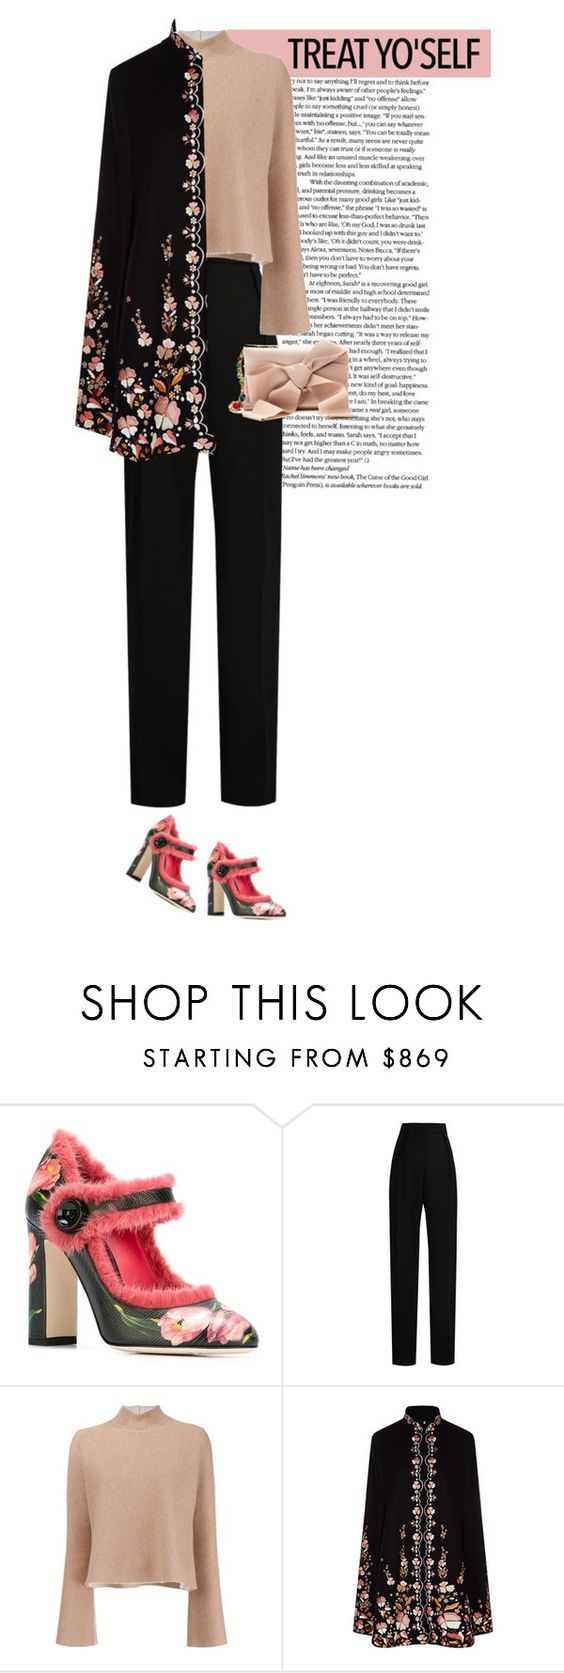 """""""Untitled #269"""" by arees ❤ liked on Polyvore featuring Dolce&Gabbana, Lanvin, Proenza Schouler, Vilshenko and Oscar de la Renta"""